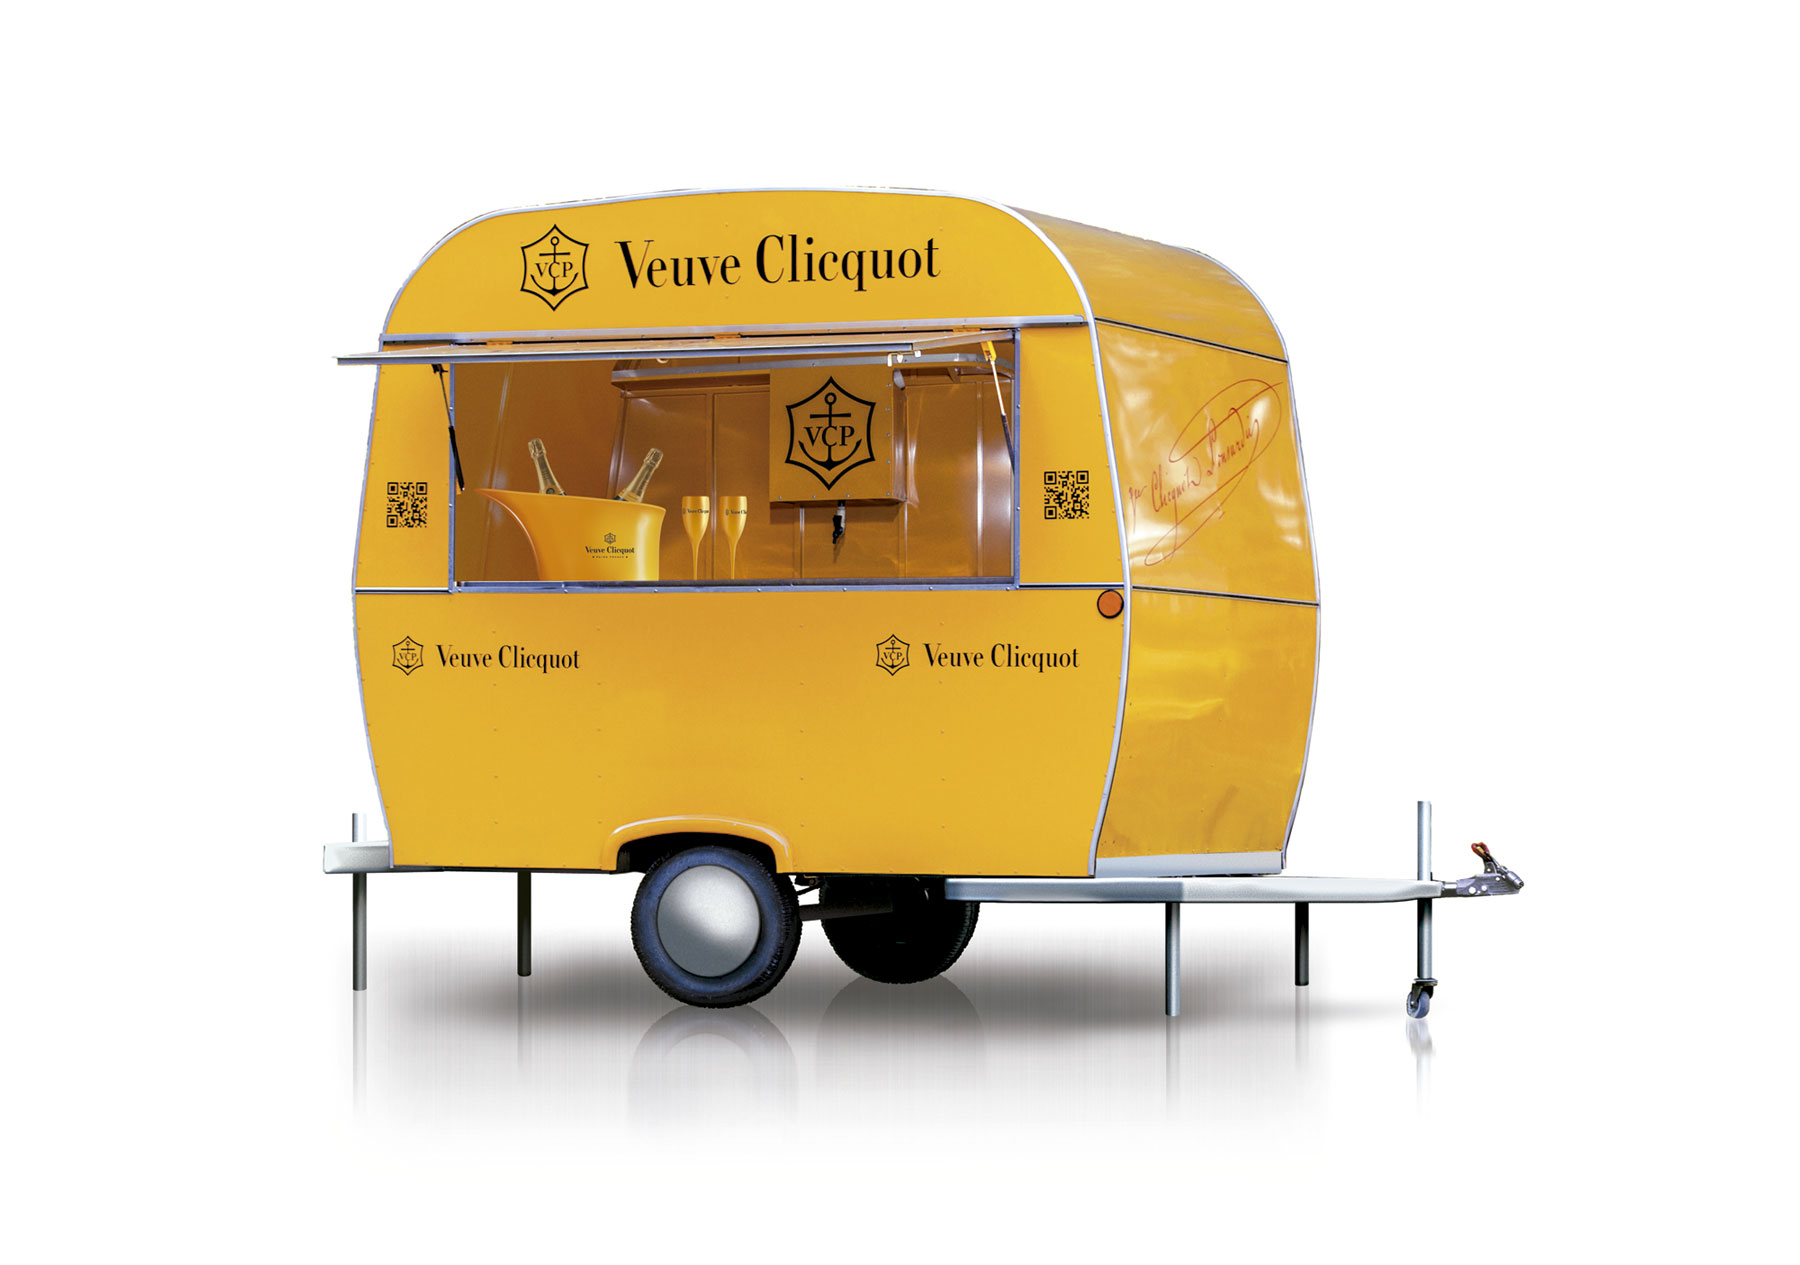 clicquot-yellow-trailer-3